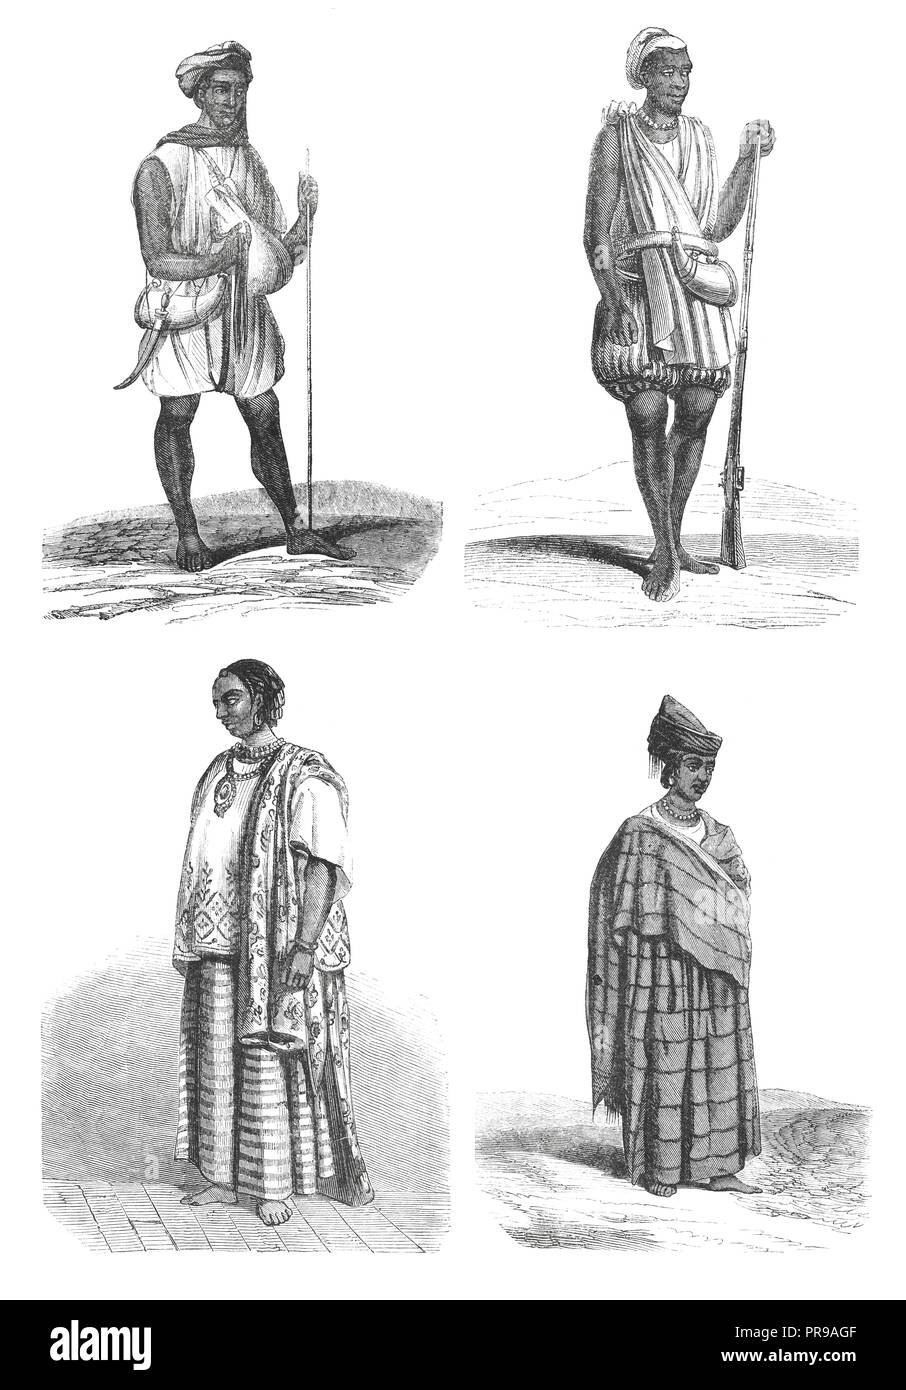 19th century illustration of Joloffs Costumes - Drawings by Nousveaux. Original artwork published in Le magasin Pittoresque by M. A. Lachevardiere, Pa - Stock Image